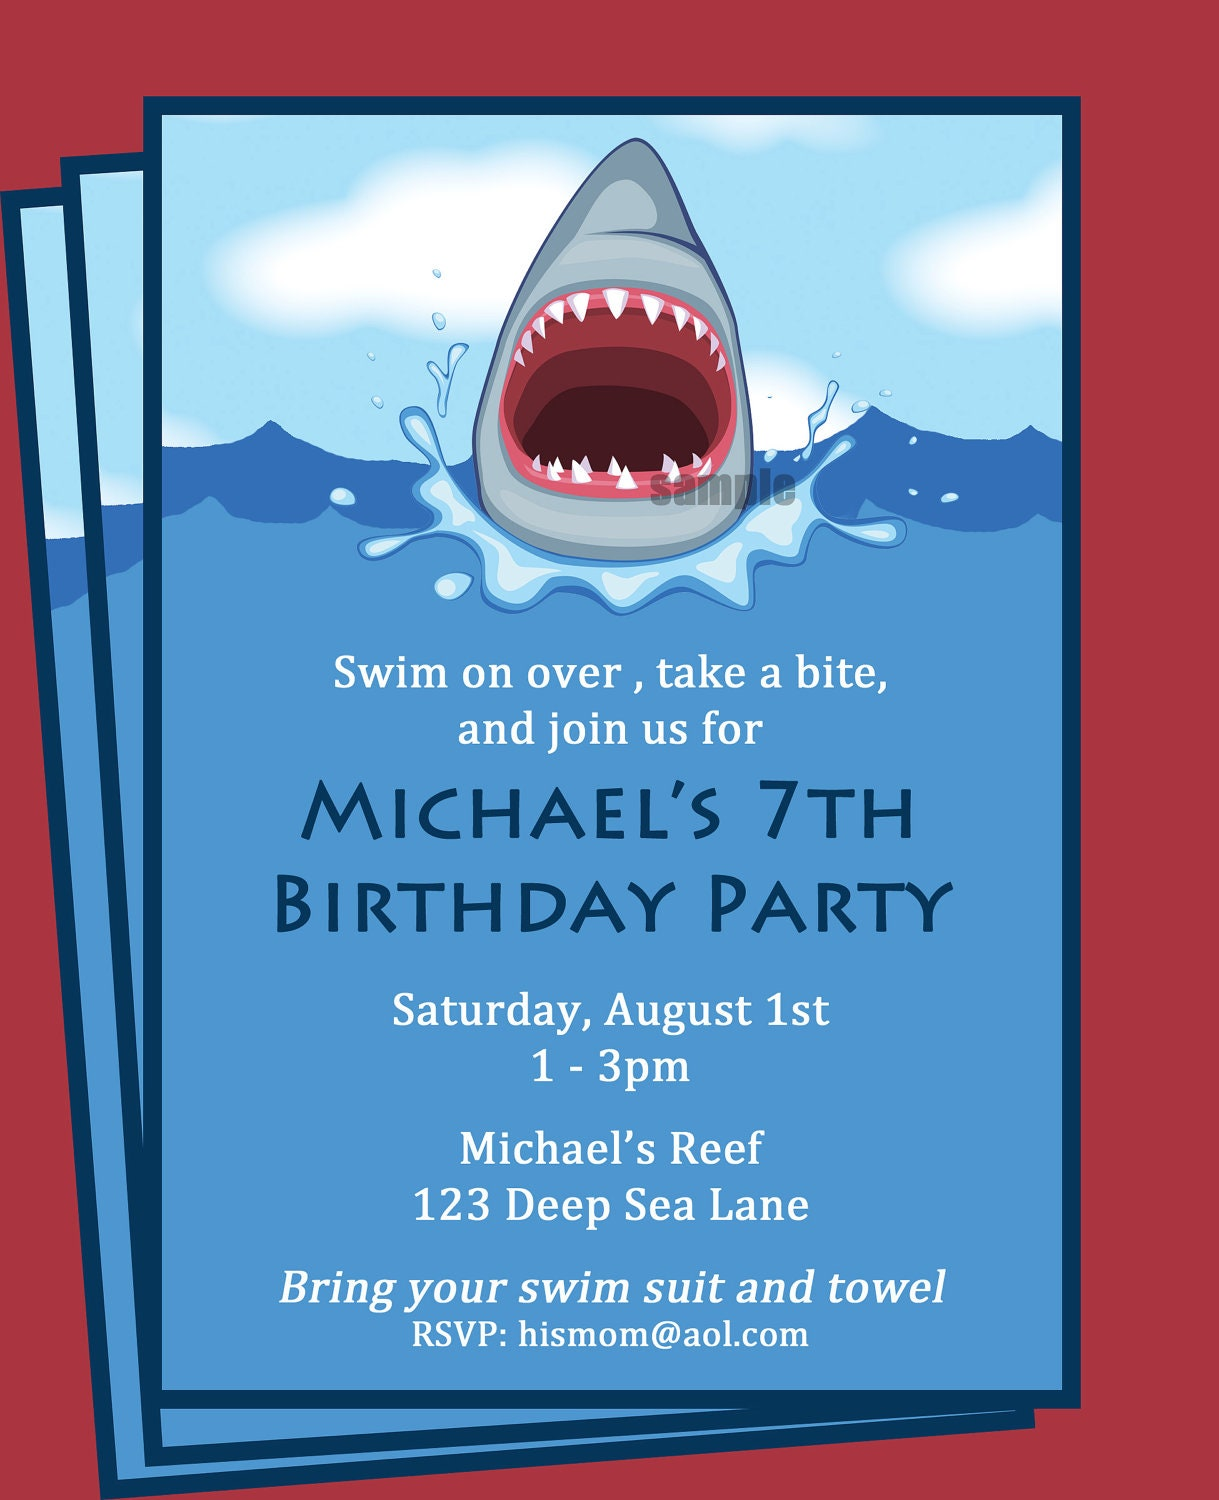 Shark Party Invitations and get inspiration to create nice invitation ideas